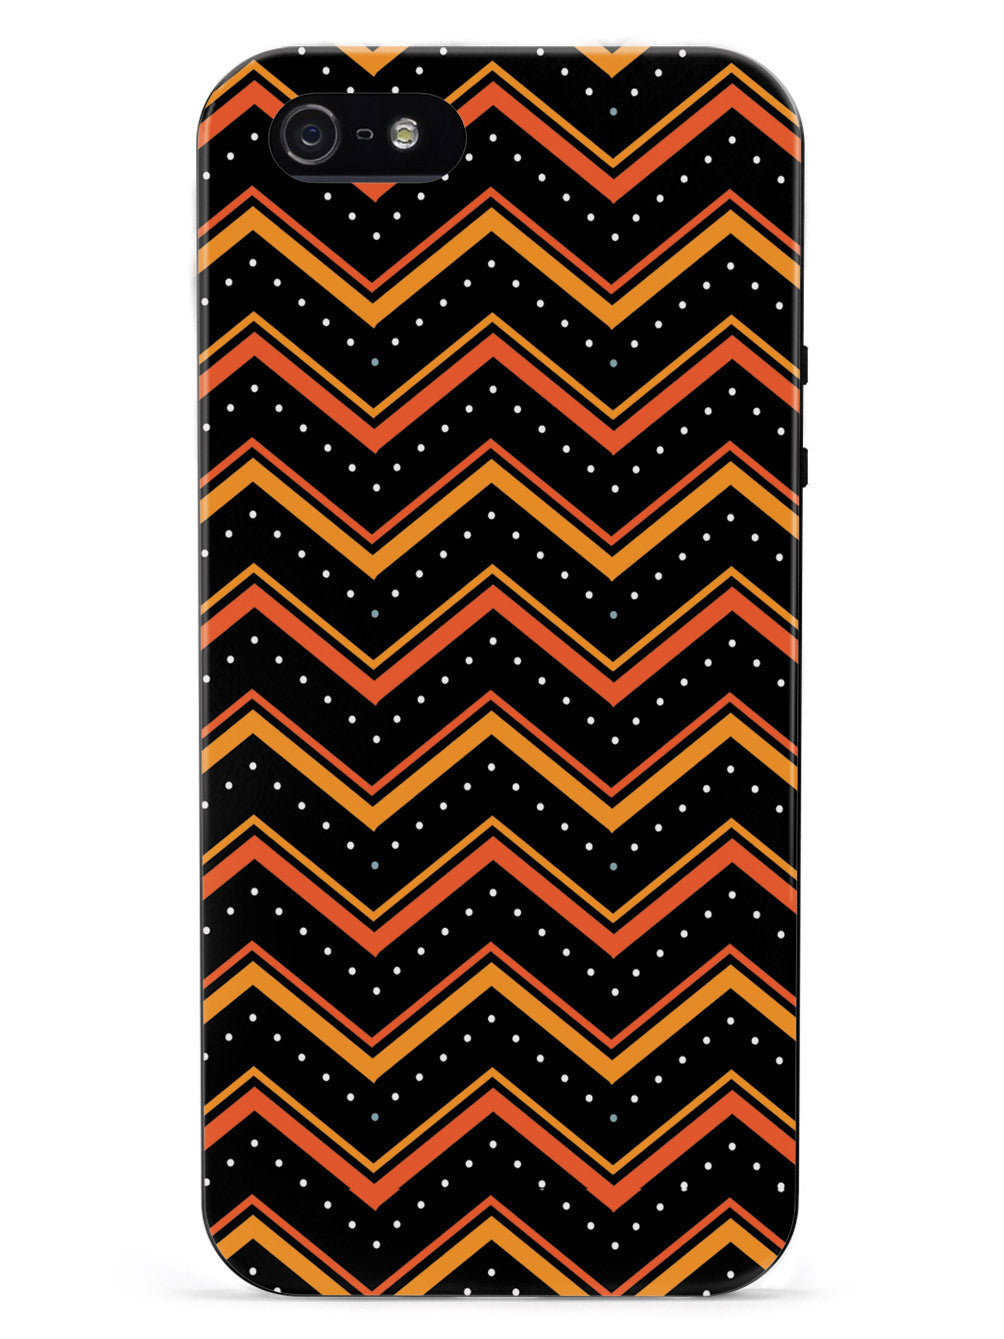 Orange and Black Chevron Pattern Case